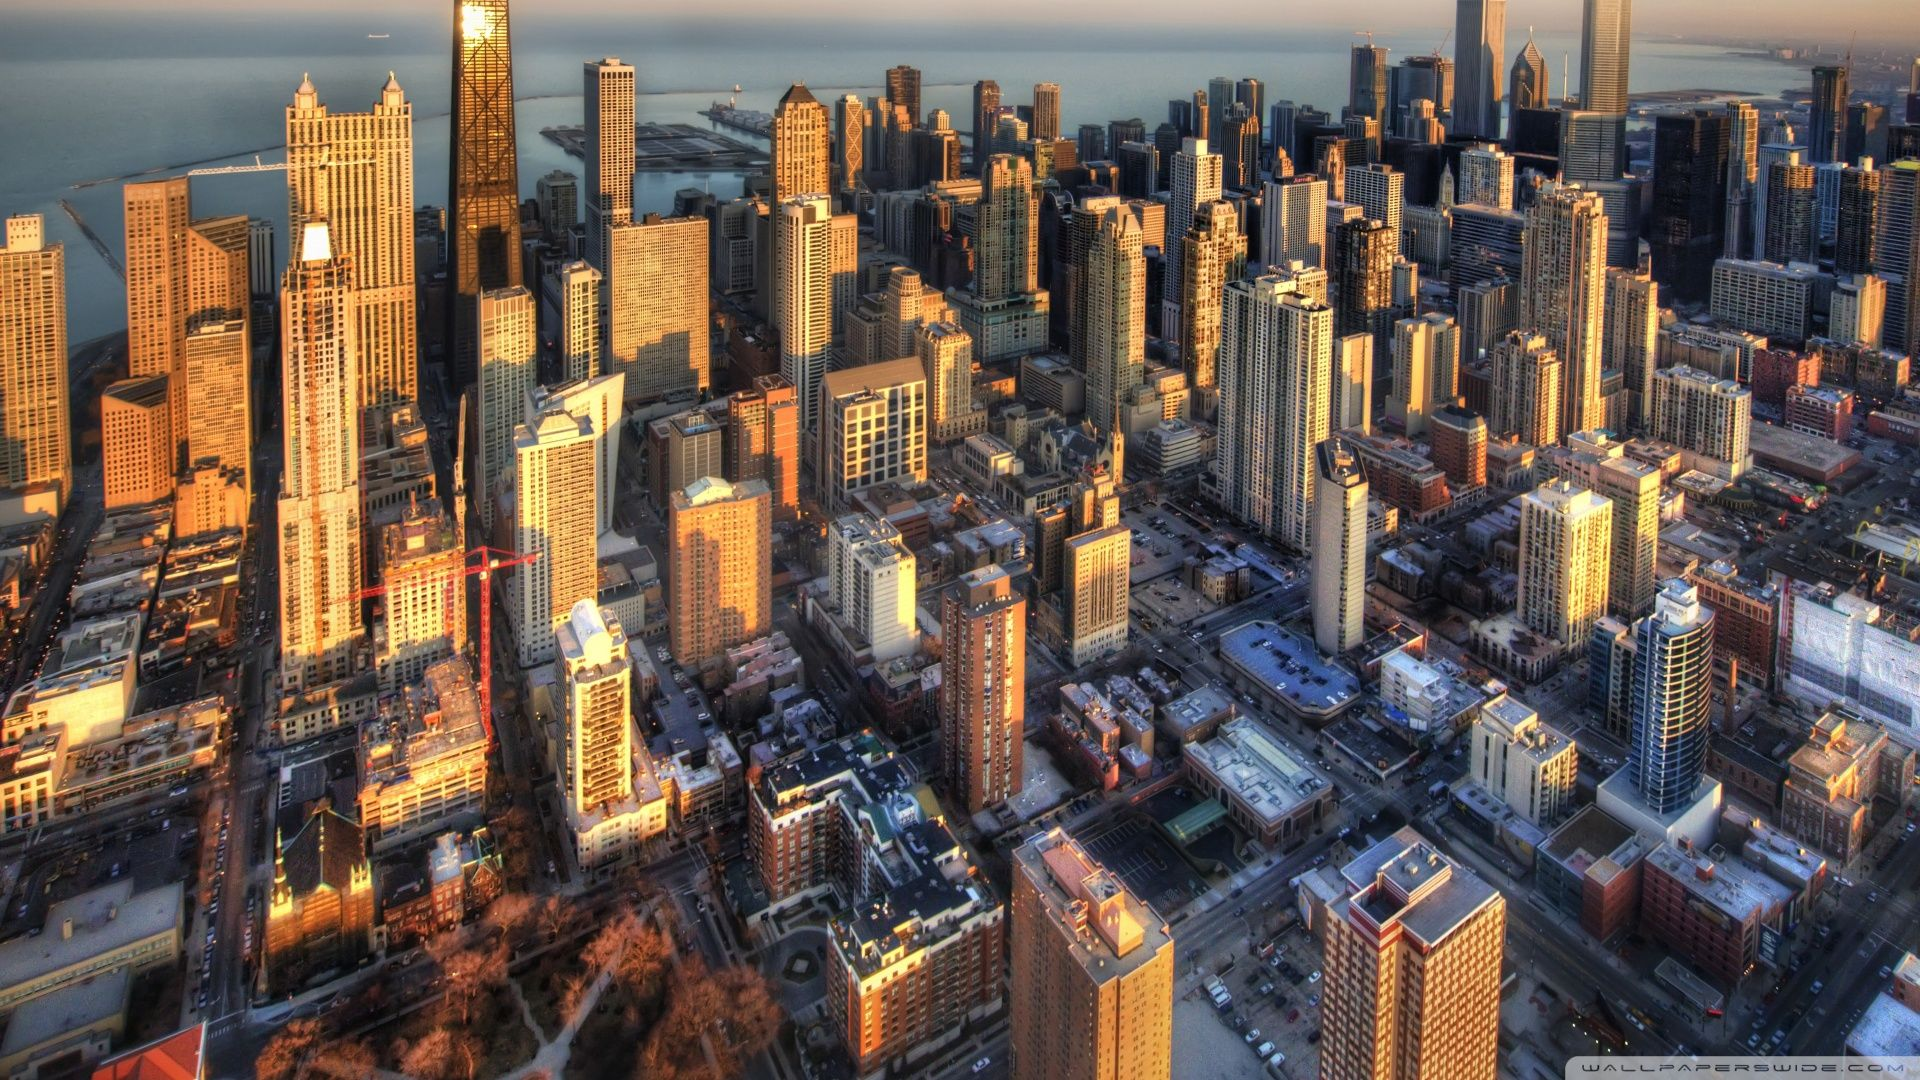 Chicago Aerial View Ultra Hd Wallpaper For 4k Uhd Widescreen Desktop Tablet Smartphone Tr In 2020 Chicago Wallpaper Aerial View Aerial Photography